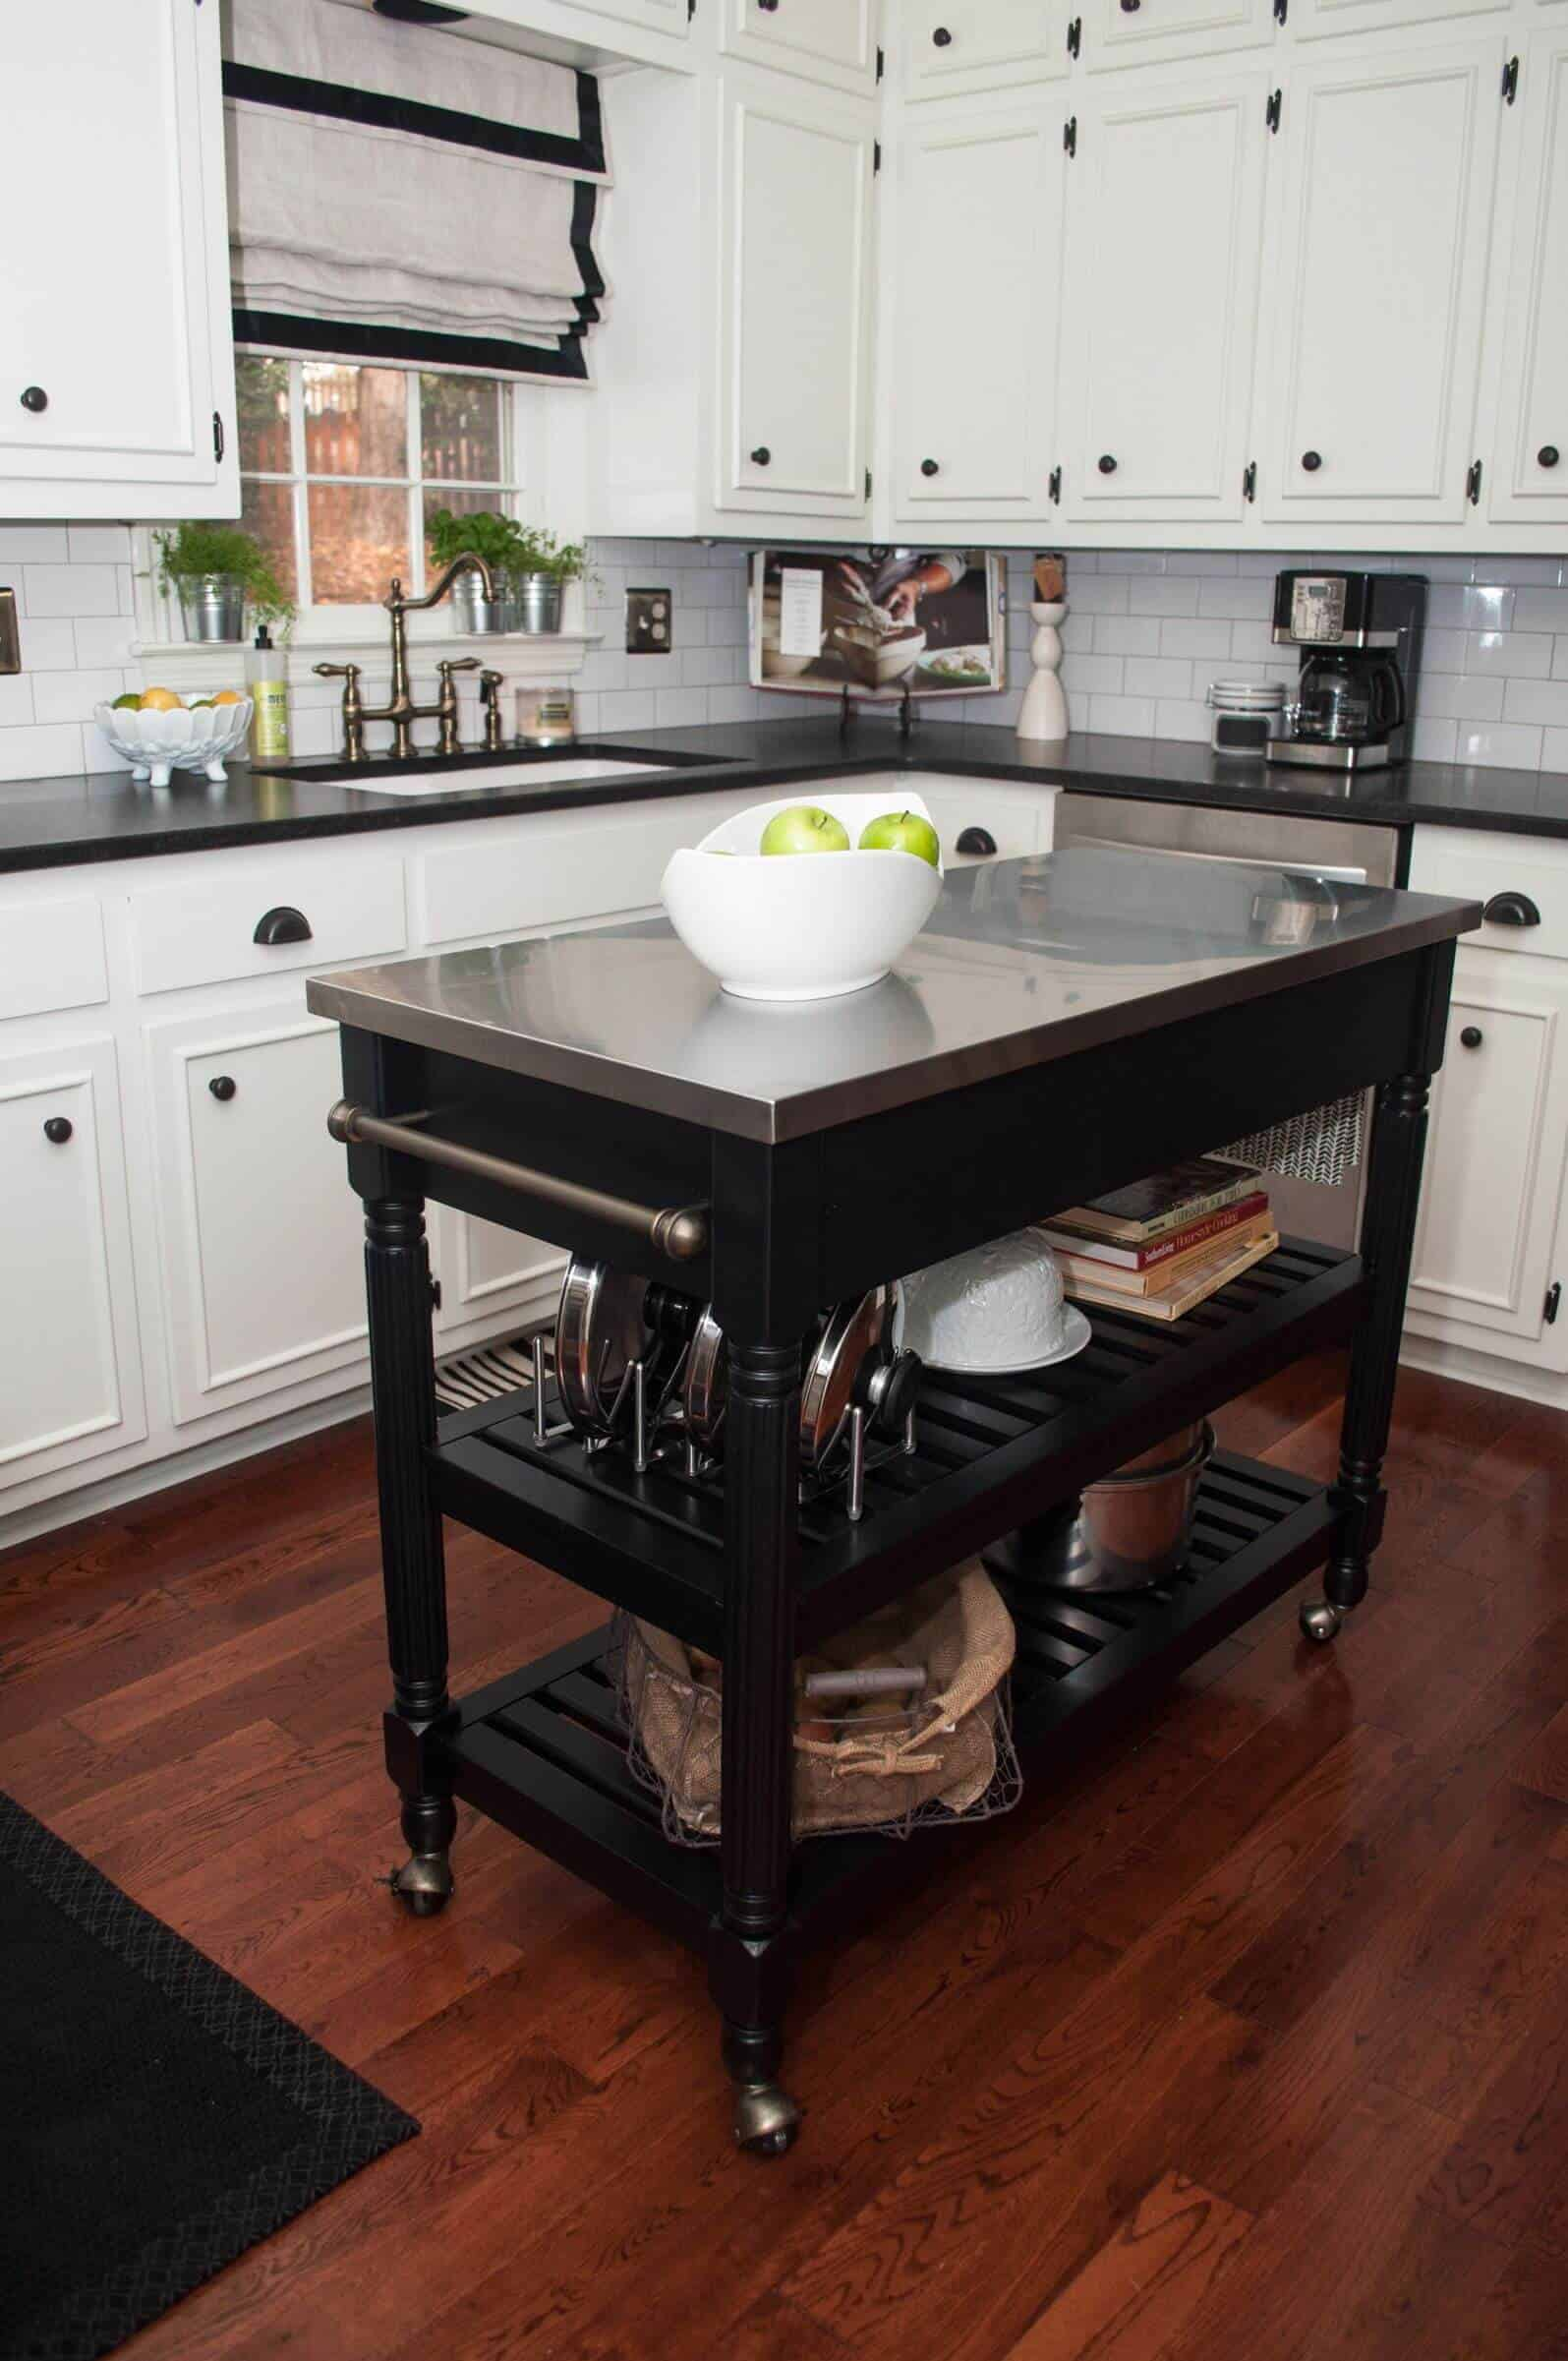 Small Kitchen Island Cart On Wheels With Stainless Steel Top.